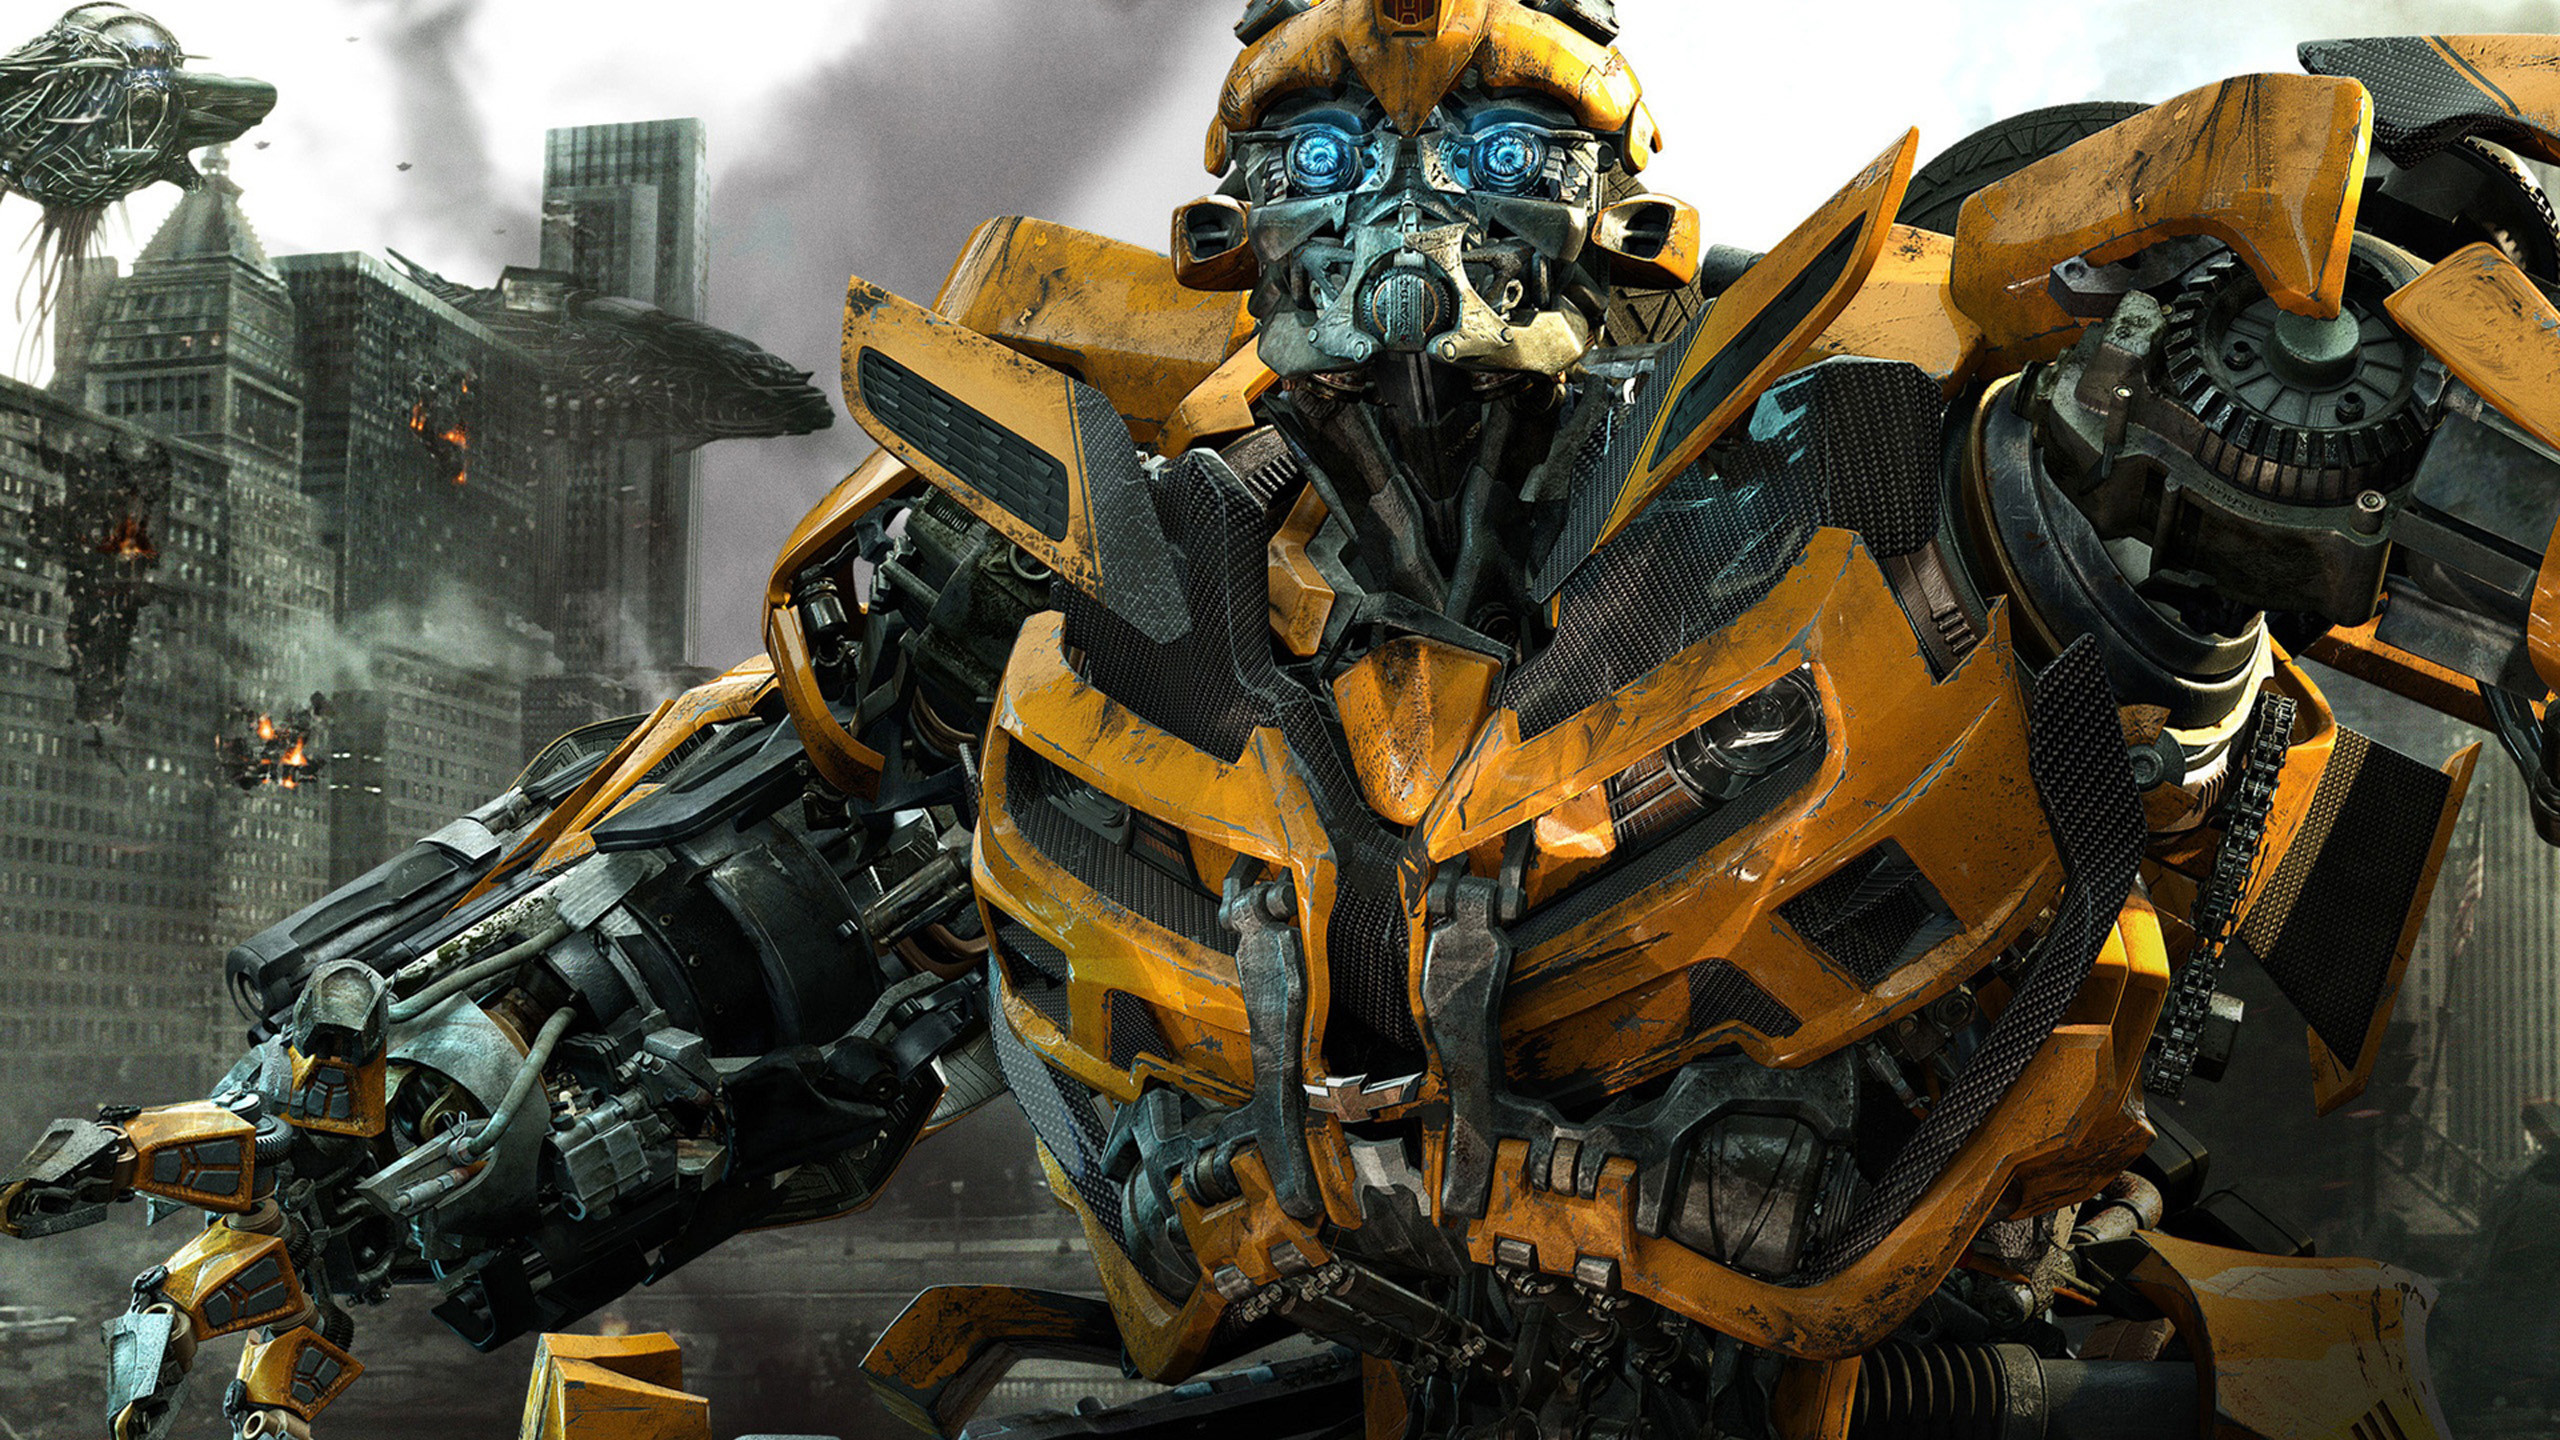 transformers hd wallpapers 1080p download